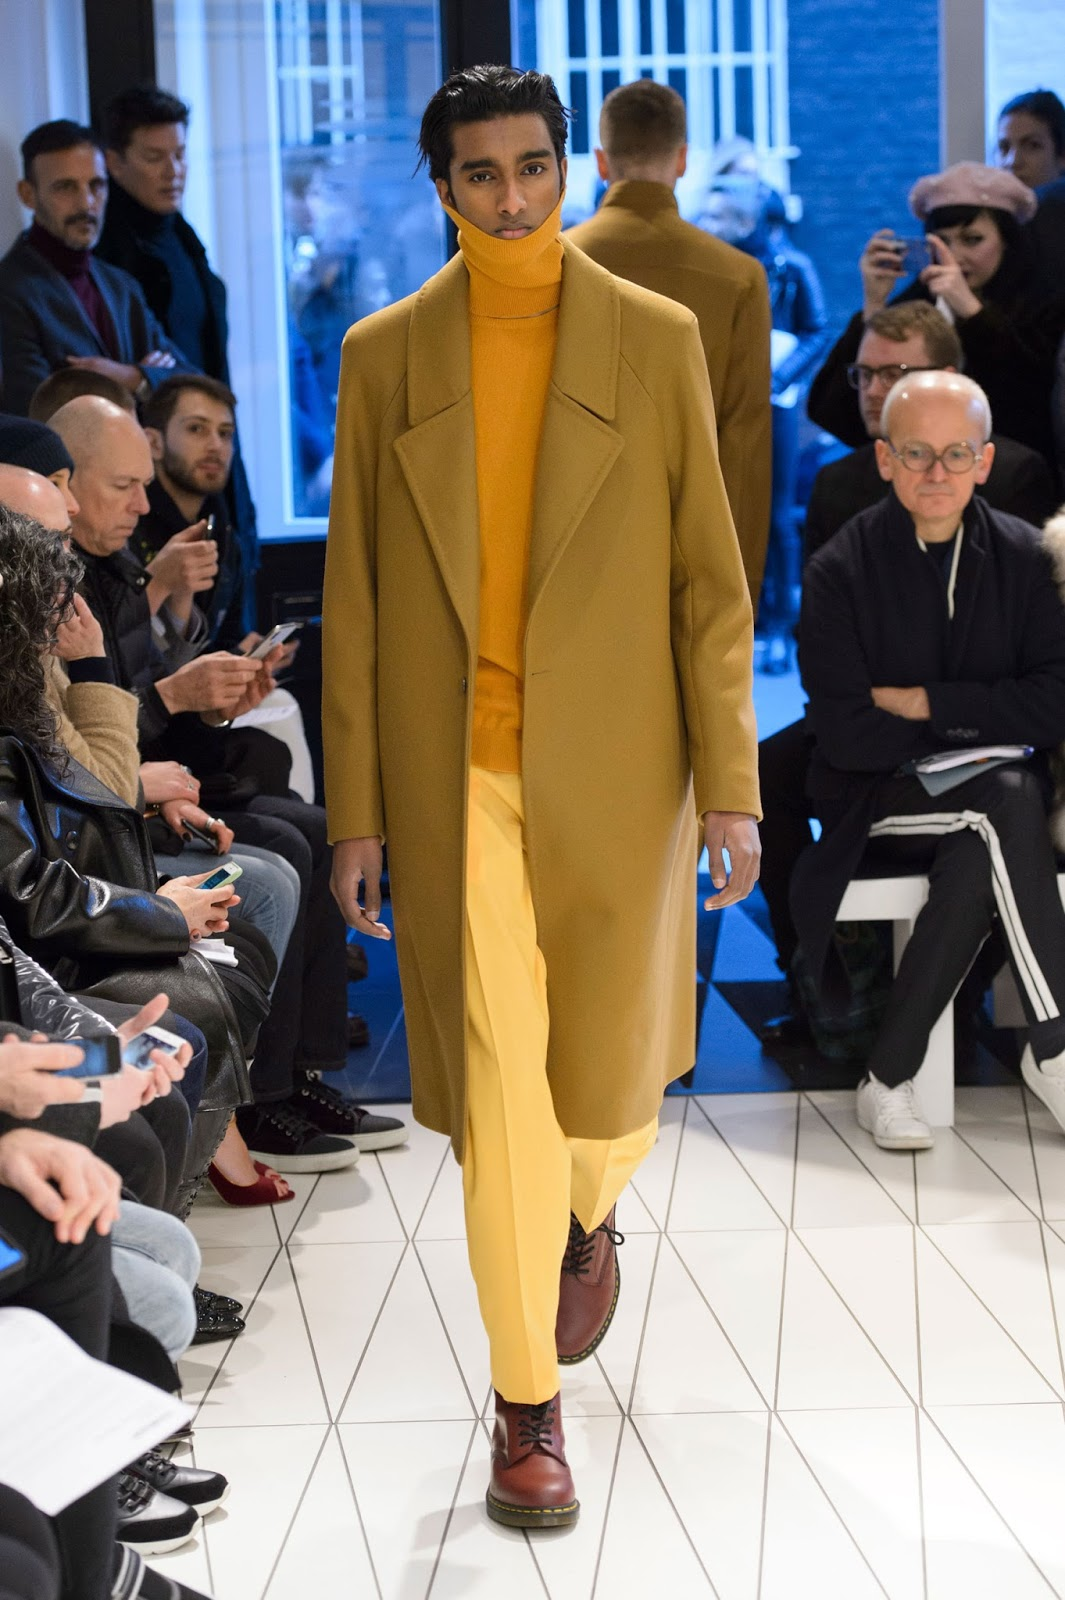 63859d4dd5d6 While surfing on internet today I found this inspiring menswear collection  from the British-Turkish fashion designer Hussein Chalayan for the season  Fall ...